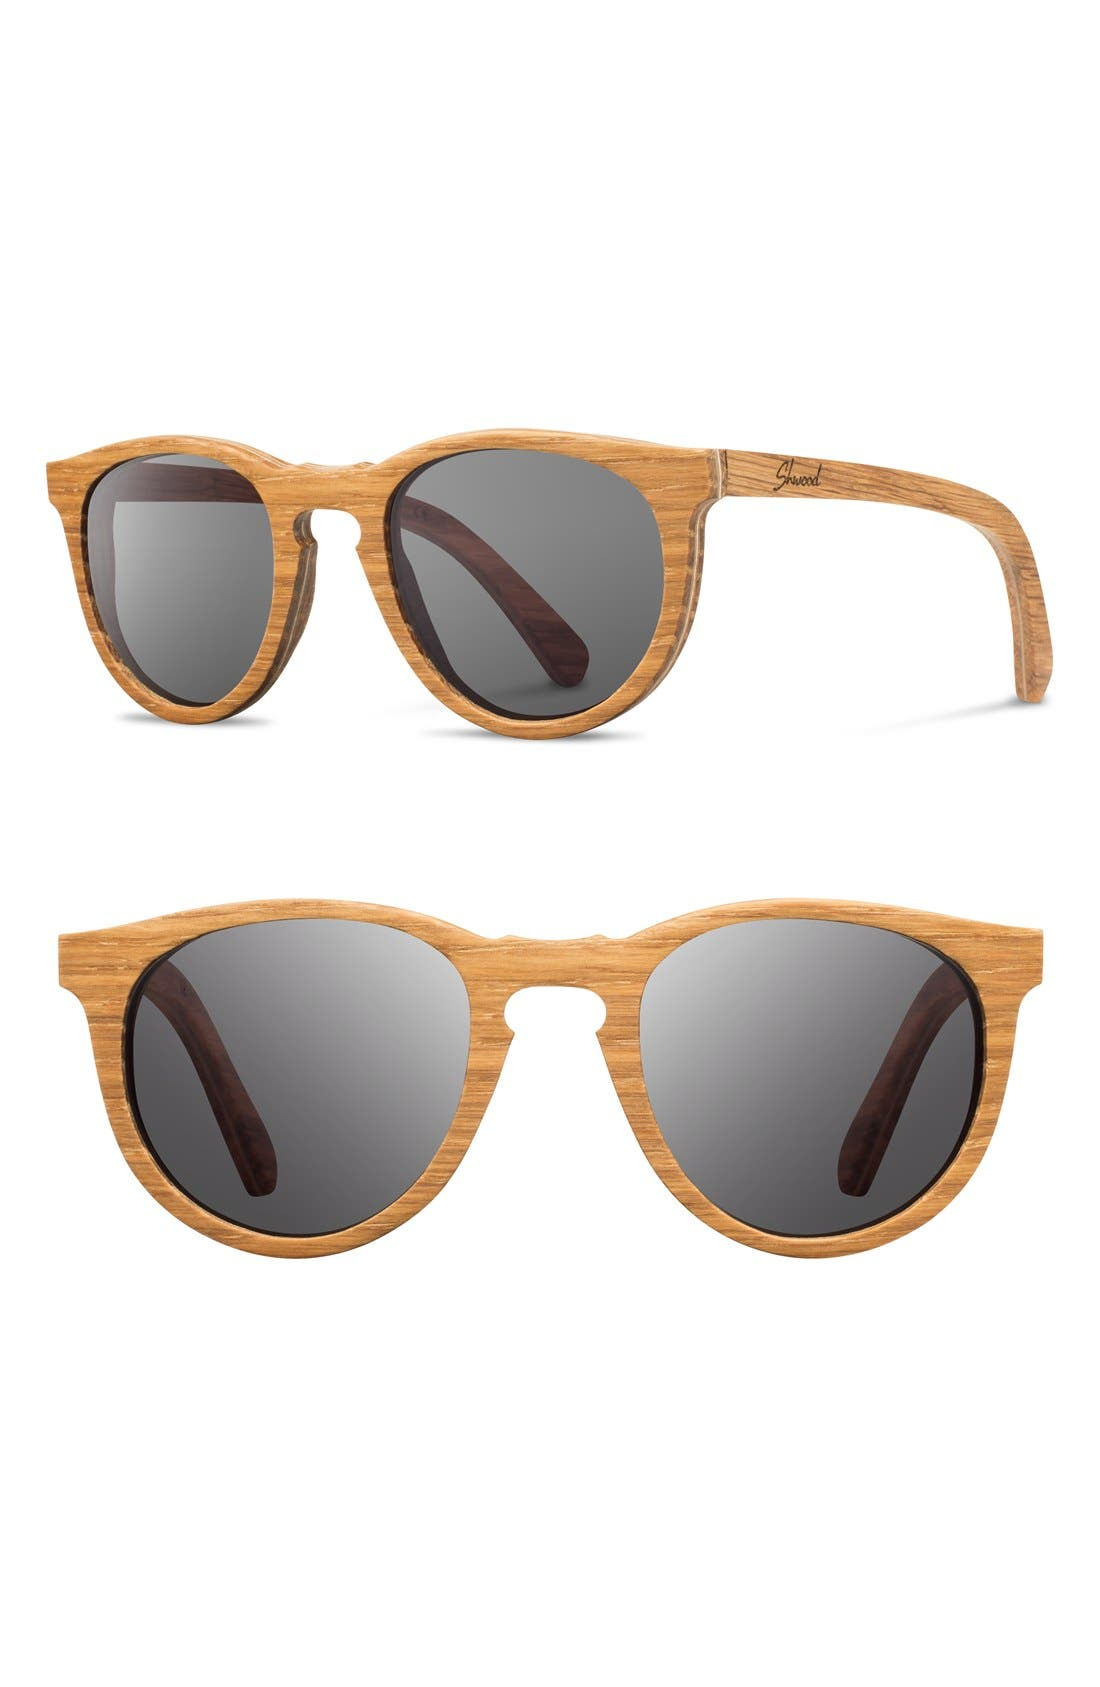 Main Image - Shwood 'Belmont' 48mm Wood Sunglasses